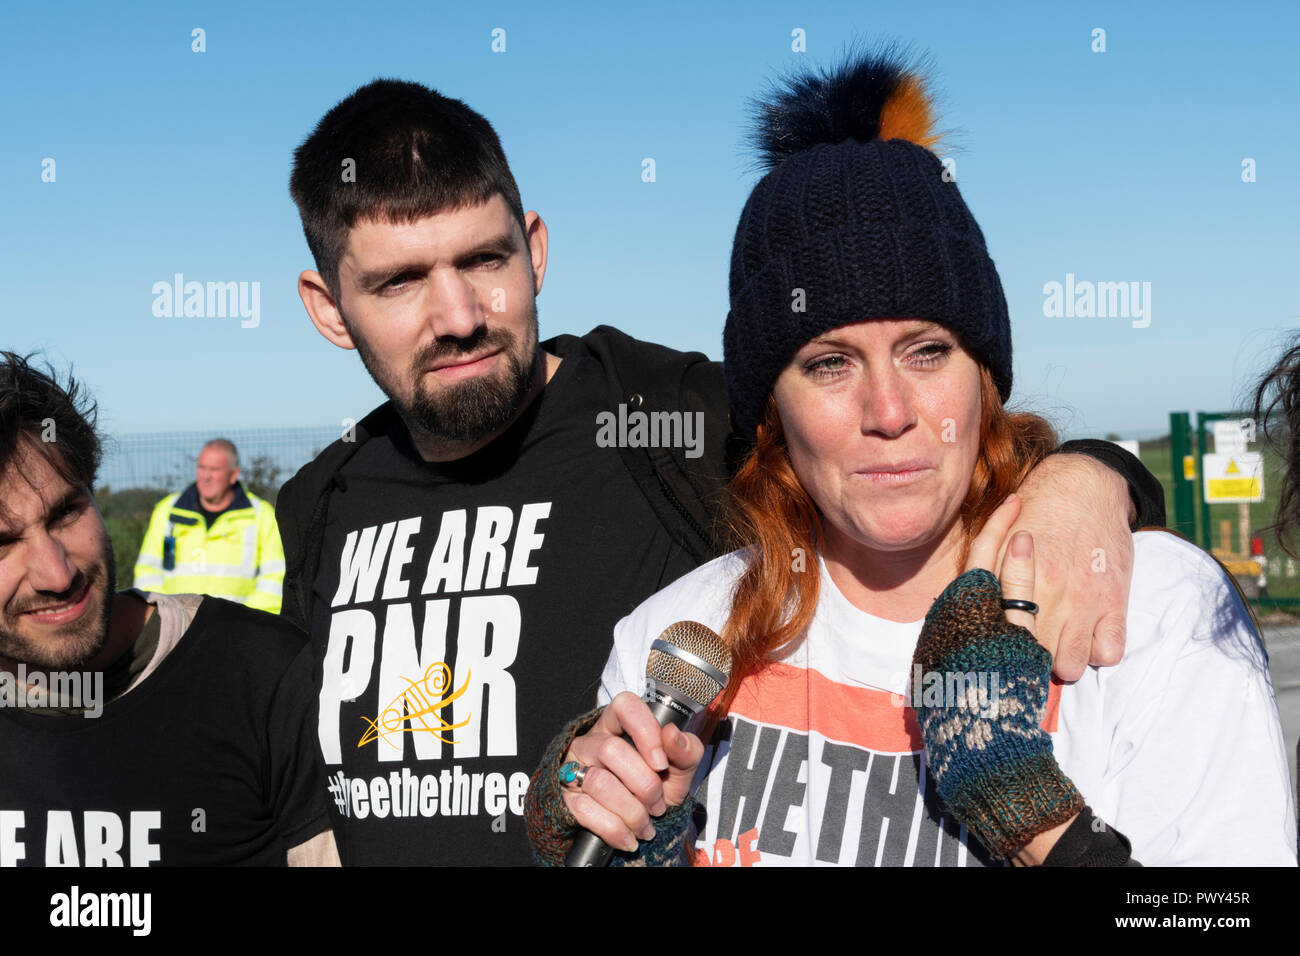 Blackpool. UK, 18th Oct. 2018. Three anti-fracking campaigners who were released from Preston jail after their successful appeal against their prison sentences visited the controversial Cuadrilla exploratory shale gas site and issued their press release to the gathered media. Supported by their partners they addressed the  crowd to explain why they will continue to campaign against fracking, their time in jail and the overwhelming support from fellow campaigners. Their partners also gave their thanks to fellow campaigners.  Credit: Dave Ellison/Alamy Live News - Stock Image